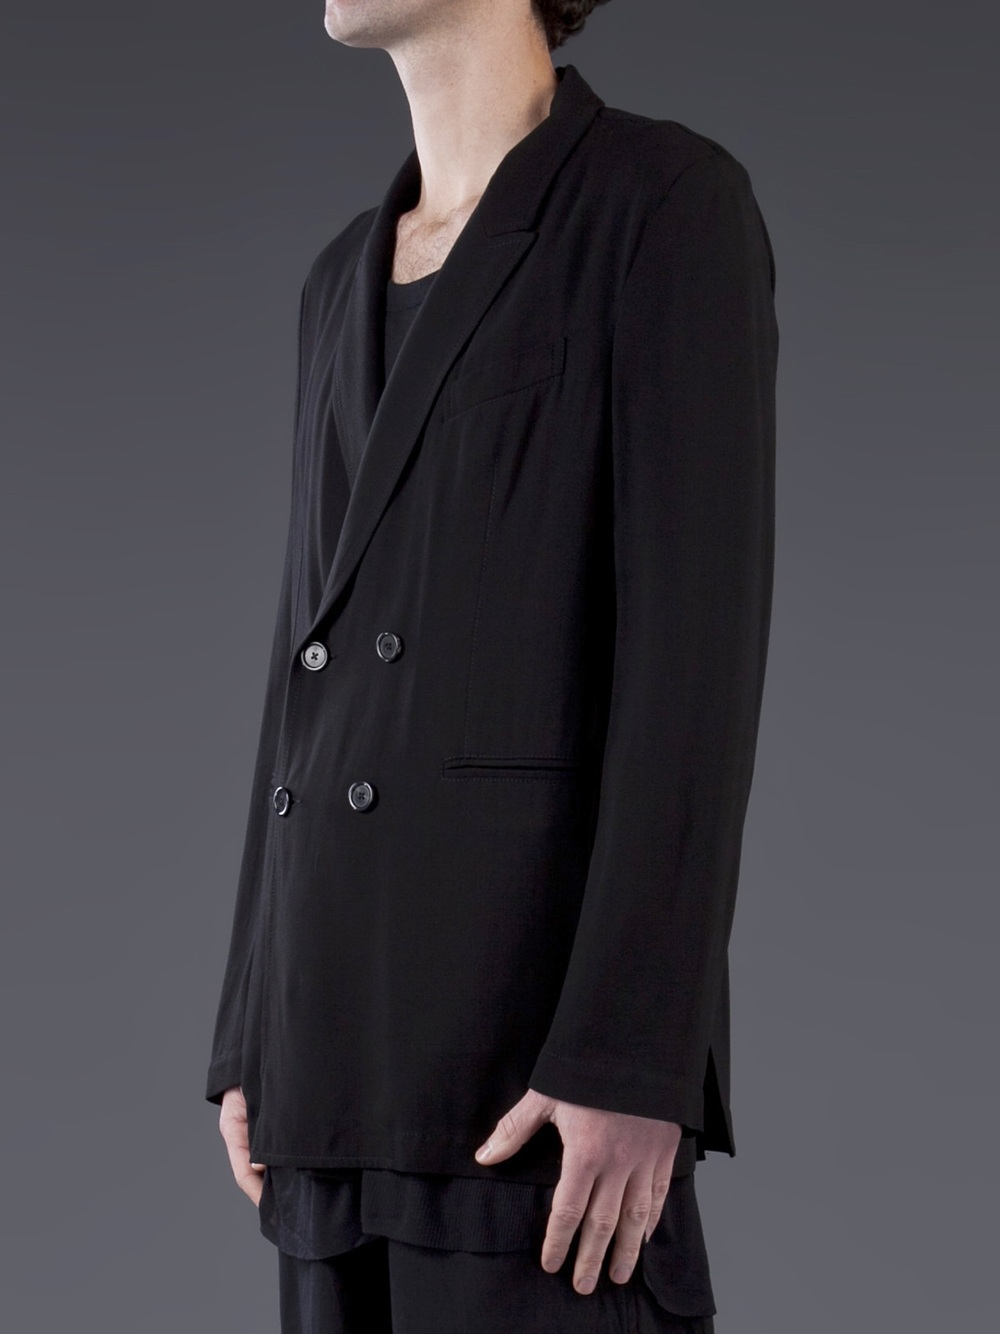 Ann Demeulemeester single breasted blazer Buy Cheap For Cheap Buy Cheap Professional Best Selling Exclusive Cheap Online vBppoVO5